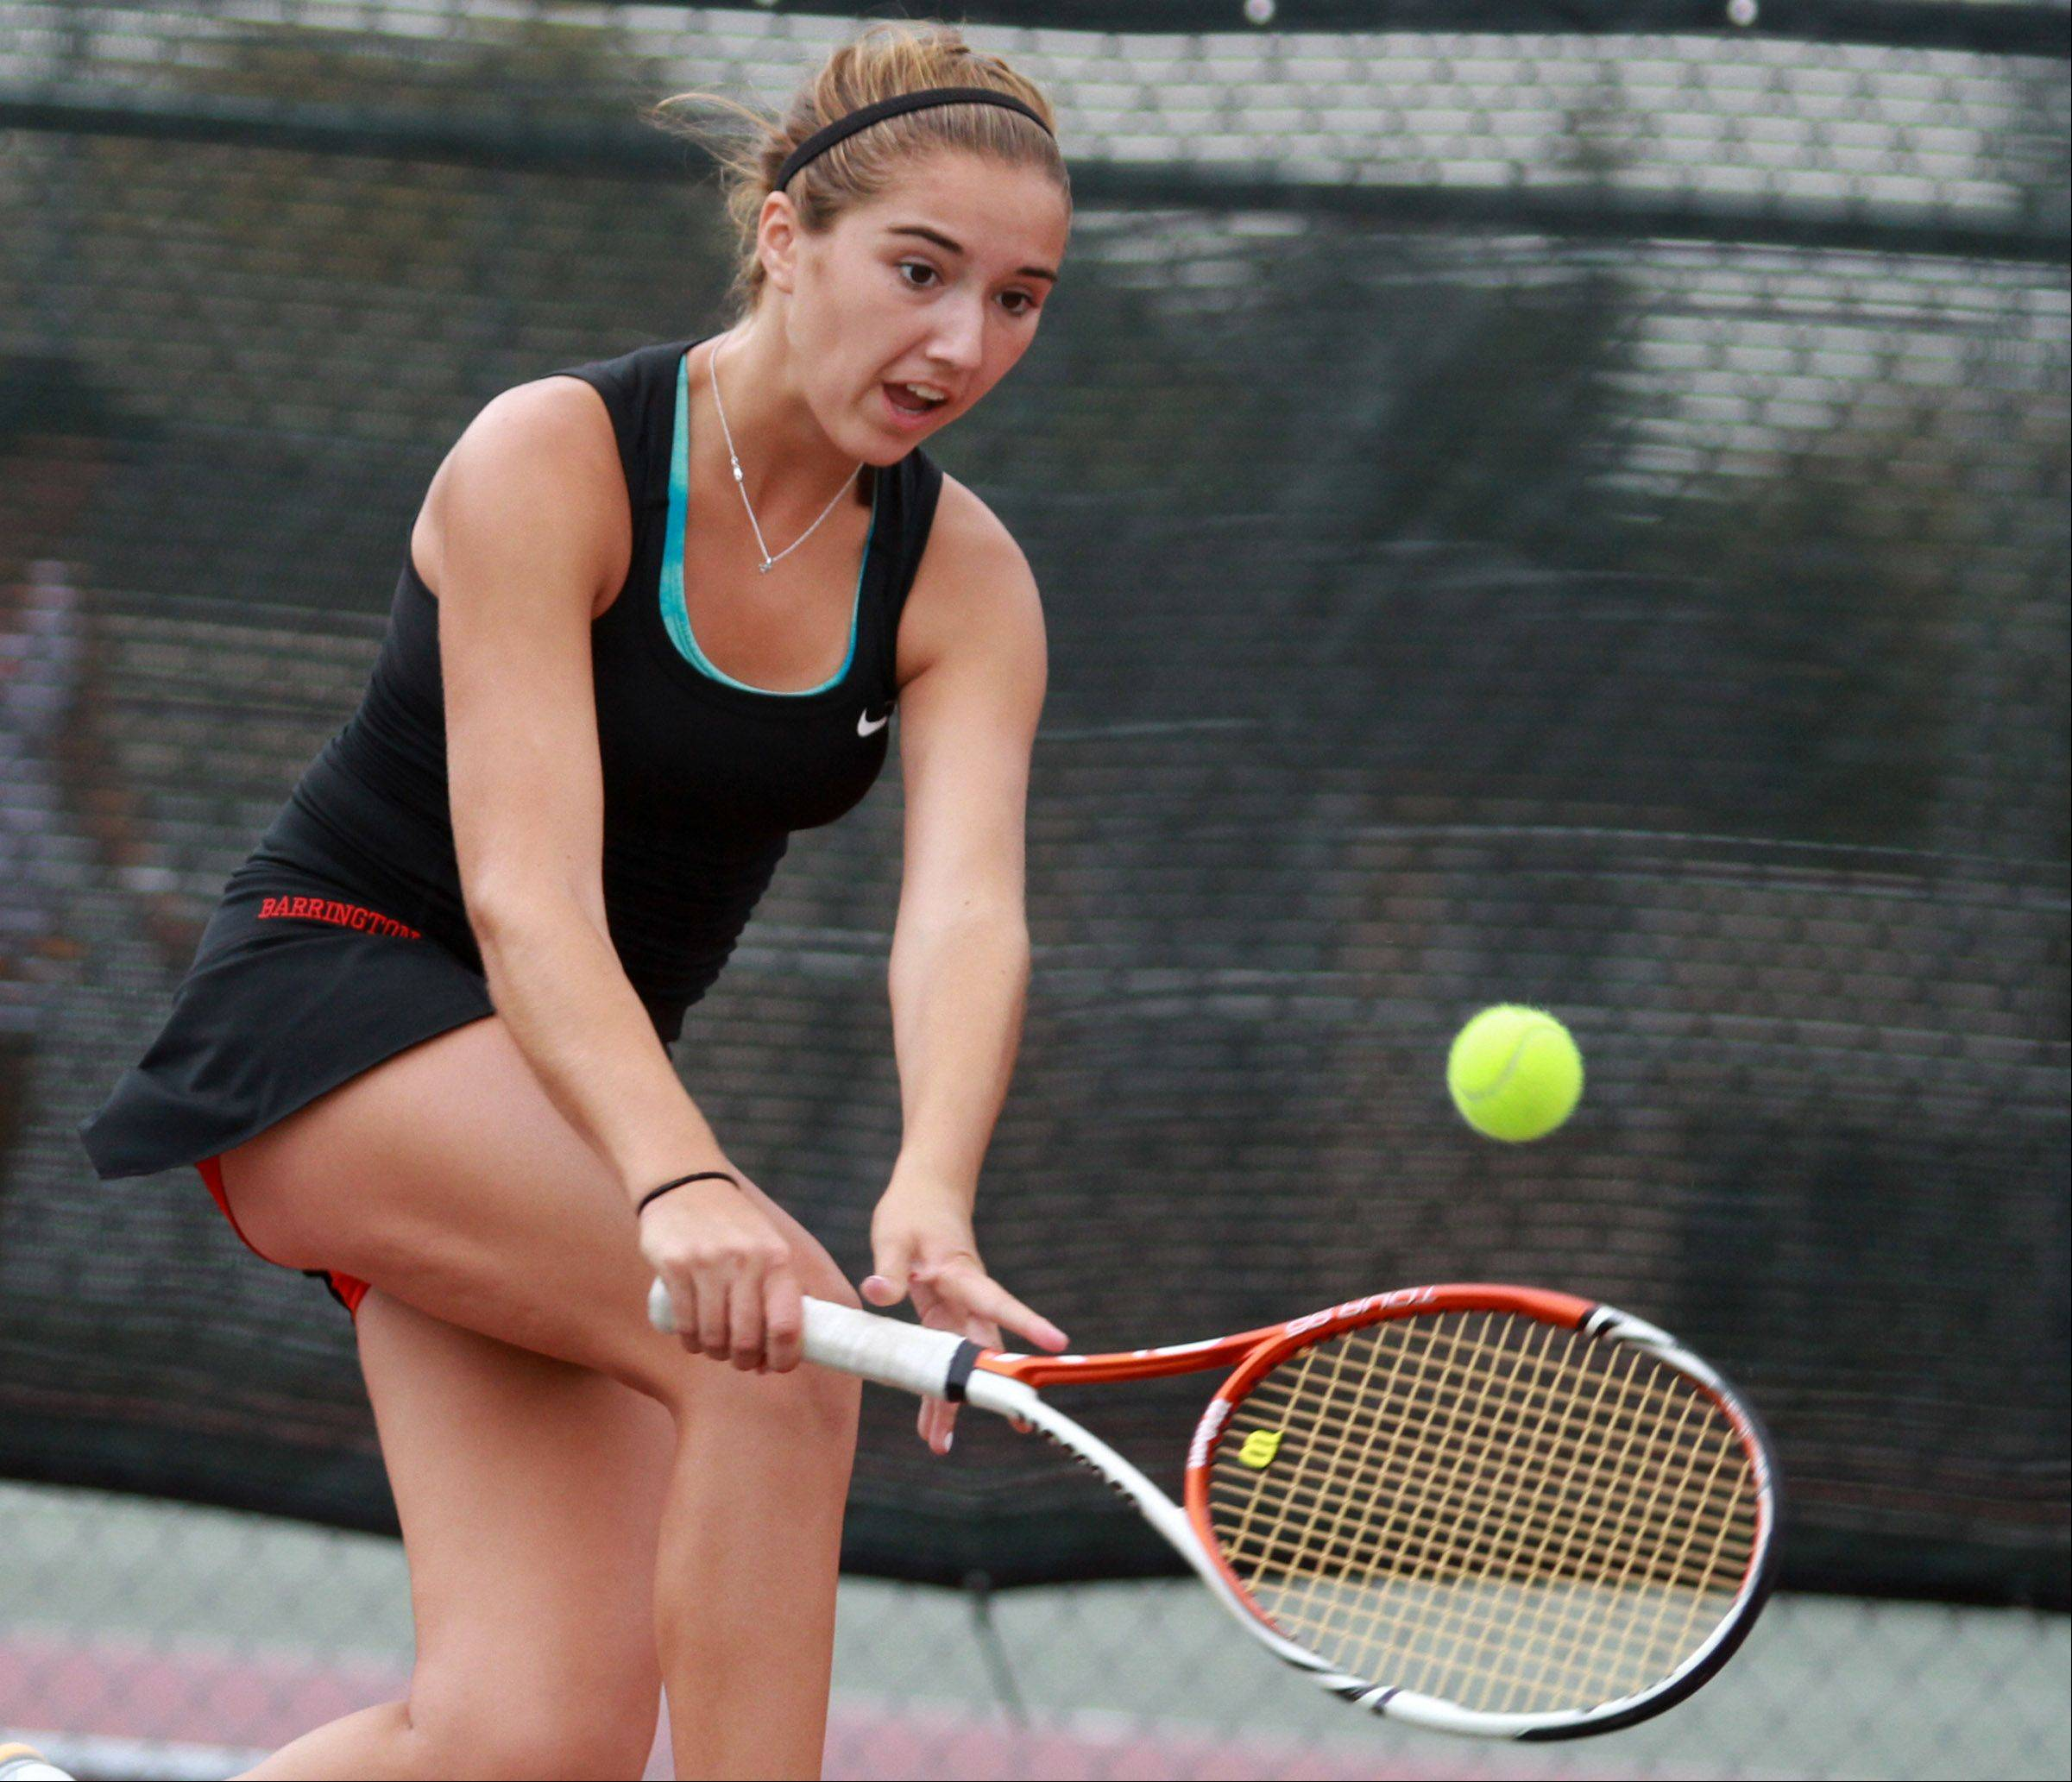 Barrington's Michelle Linden competes against Elk Grove's Jelena Vujanic in the No. 1 singles championship match at Rolling Meadows on Saturday.